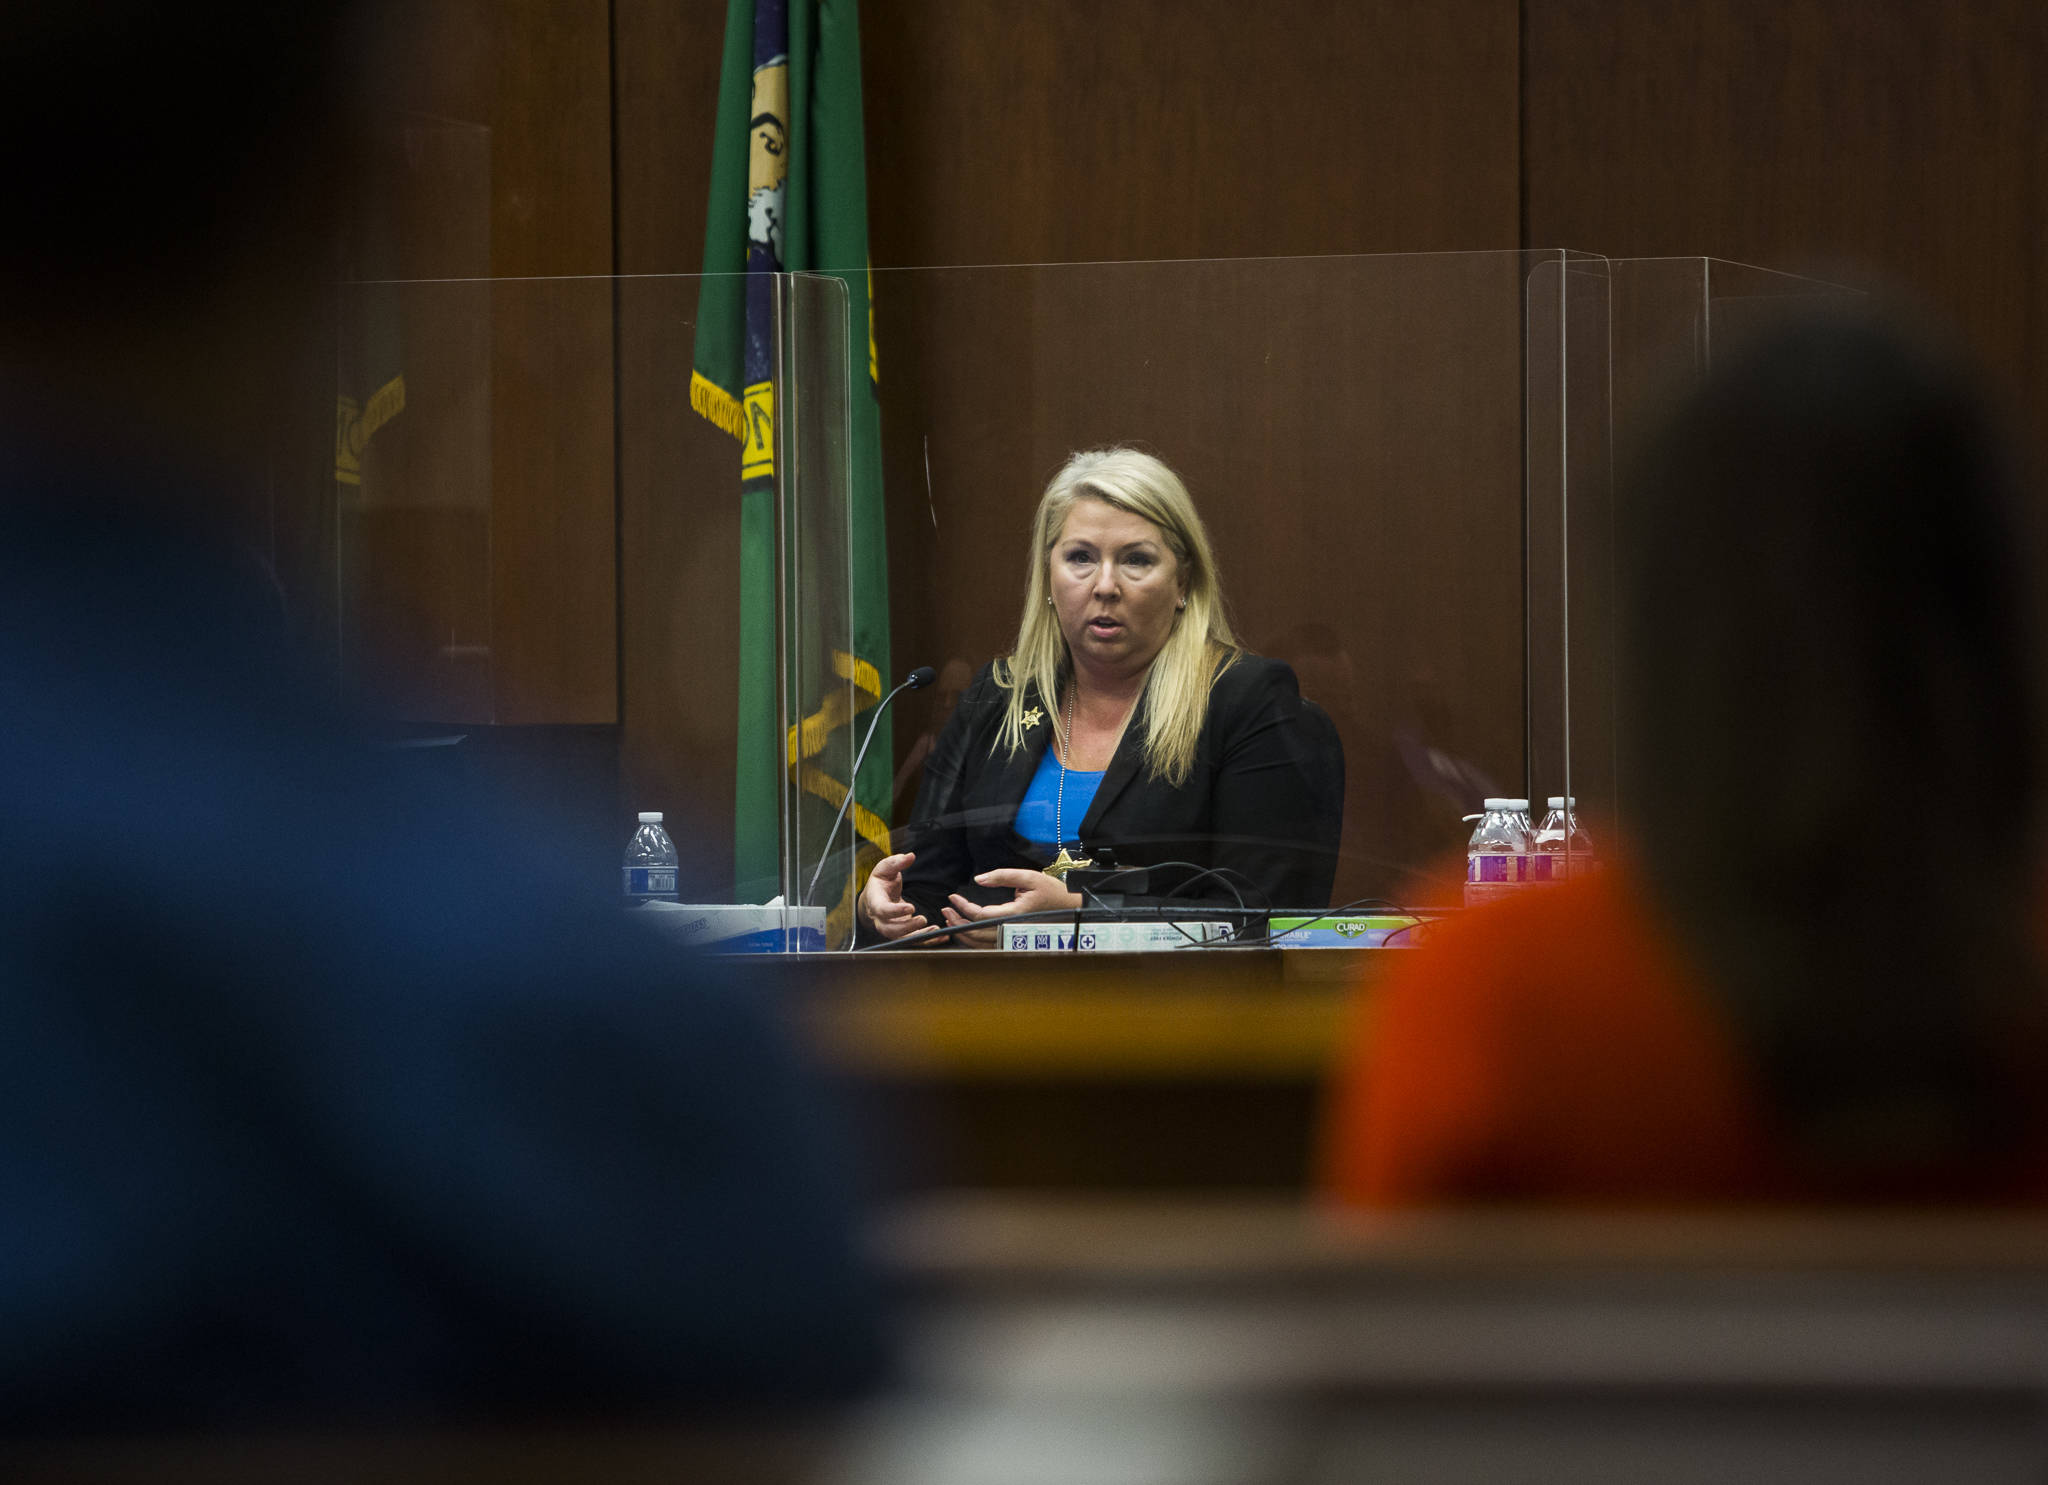 Olivia Vanni / The Herald Snohomish County sheriff's detective Kendra Conley testifies in the cold case murder trial of Terrence Miller at the Snohomish County Courthouse on Thursday in Everett.